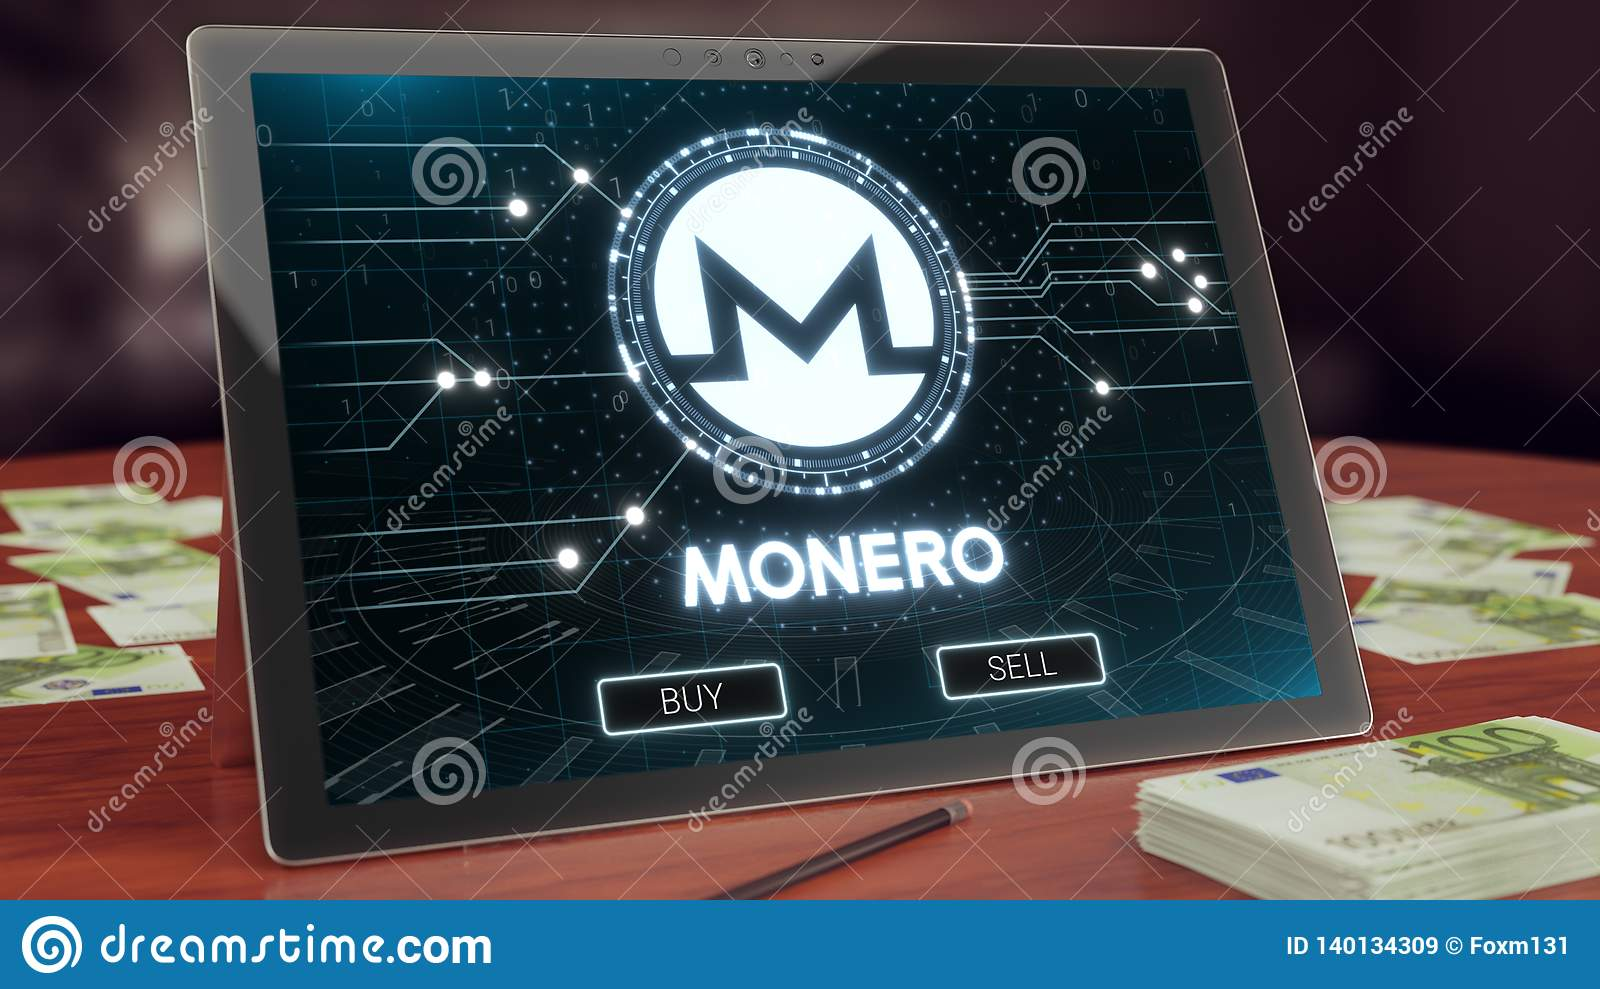 Monero cryptocurrency logo on the pc tablet, 3D illustration